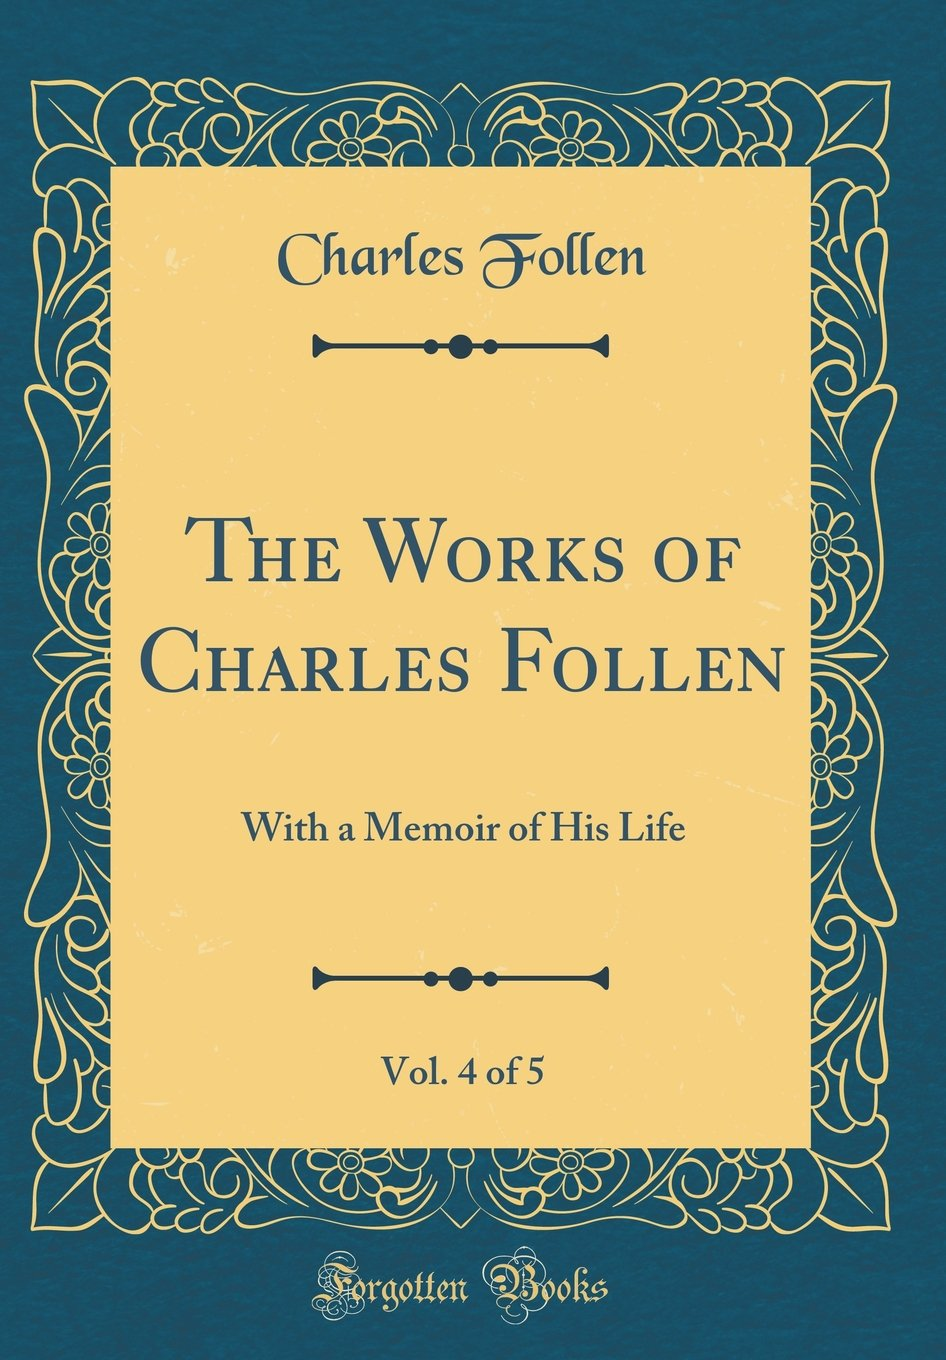 The Works of Charles Follen, Vol. 4 of 5: With a Memoir of His Life (Classic Reprint) ebook